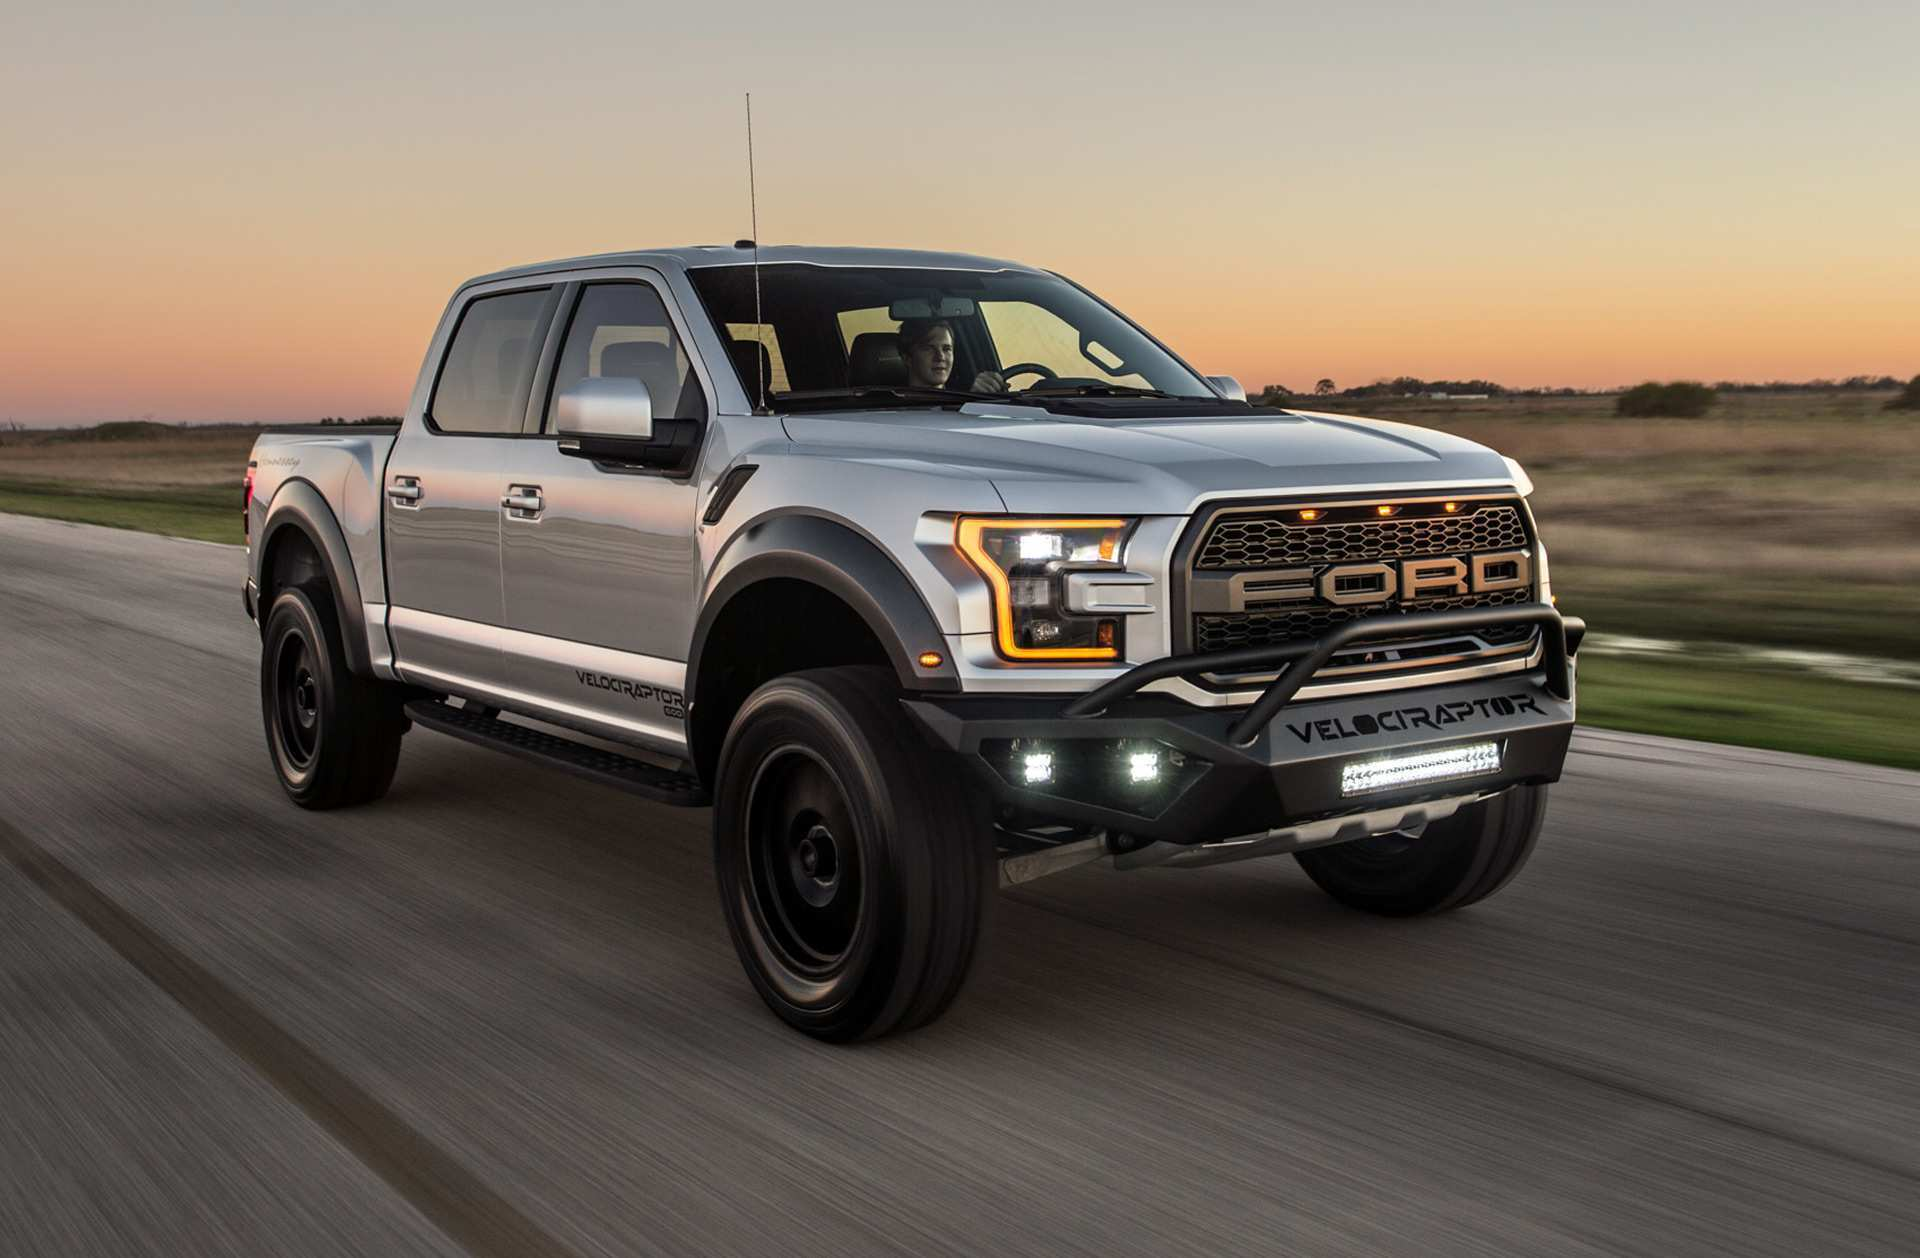 83 New New How Much Is A 2019 Ford Raptor Specs Redesign and Concept for New How Much Is A 2019 Ford Raptor Specs